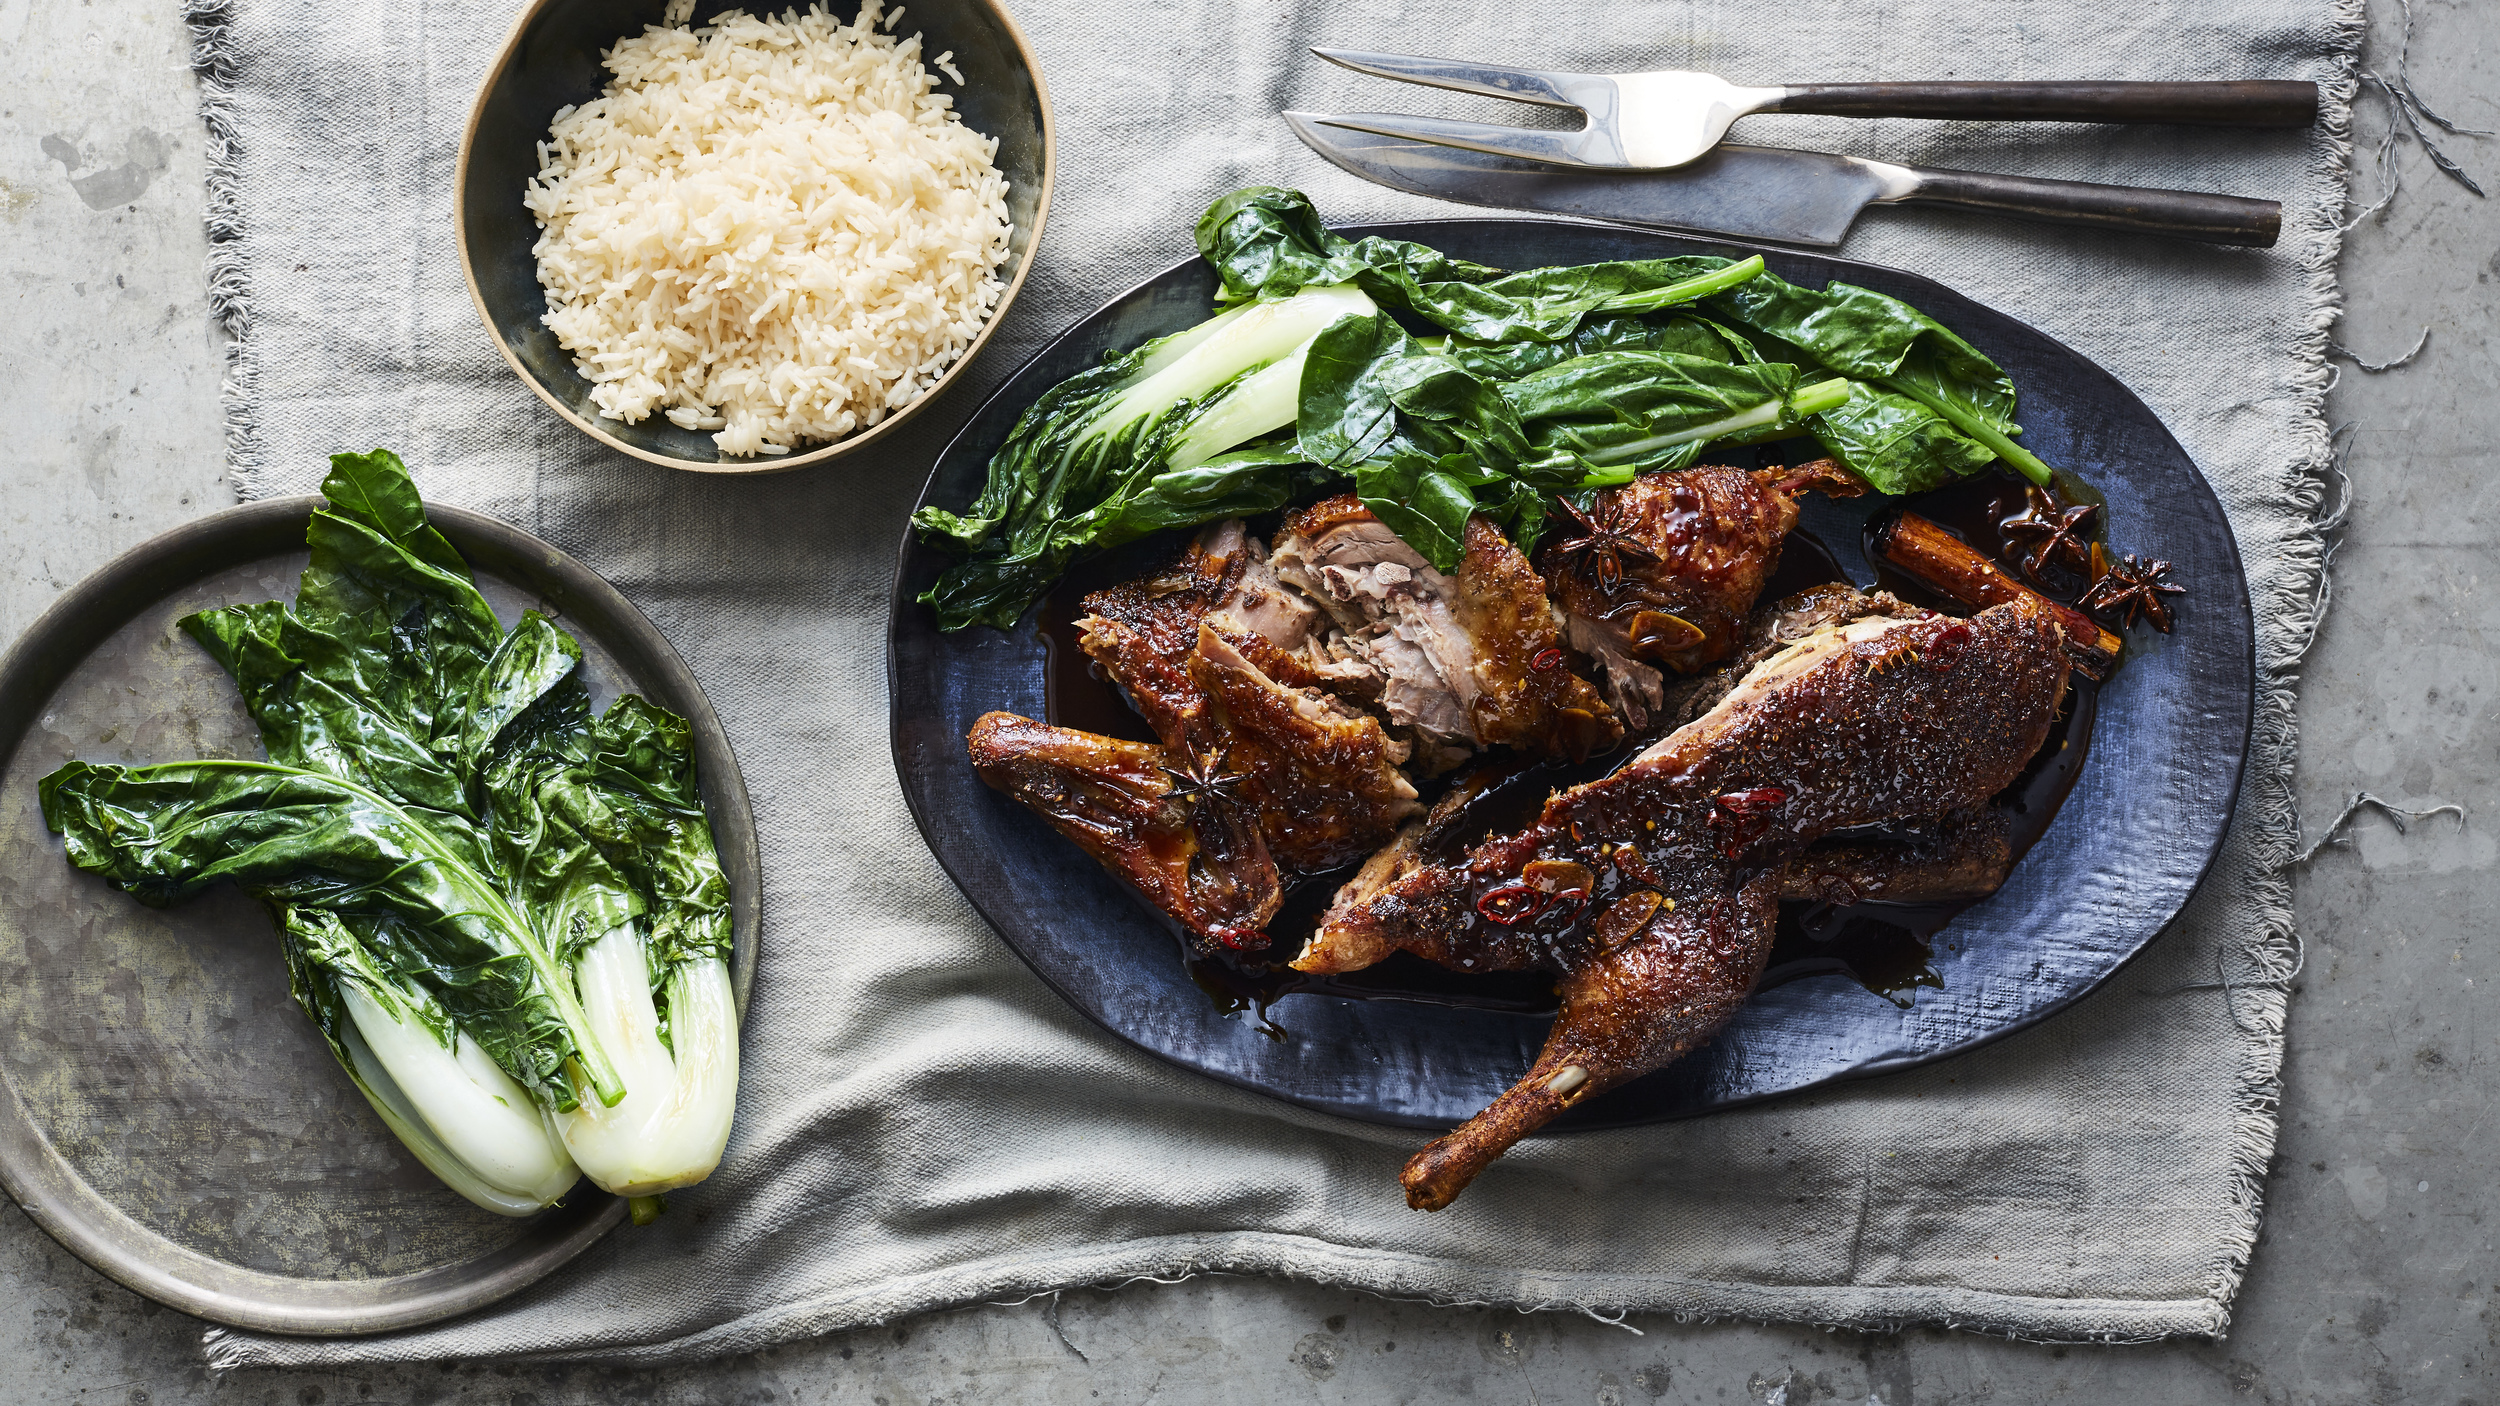 Spiced-honey roasted duck with rice and asian greens,Photography: Brett Stevens, Art Direction: Anne Marie Cummins, Food & Props Styling: Marcus Hay for SMH, Inc